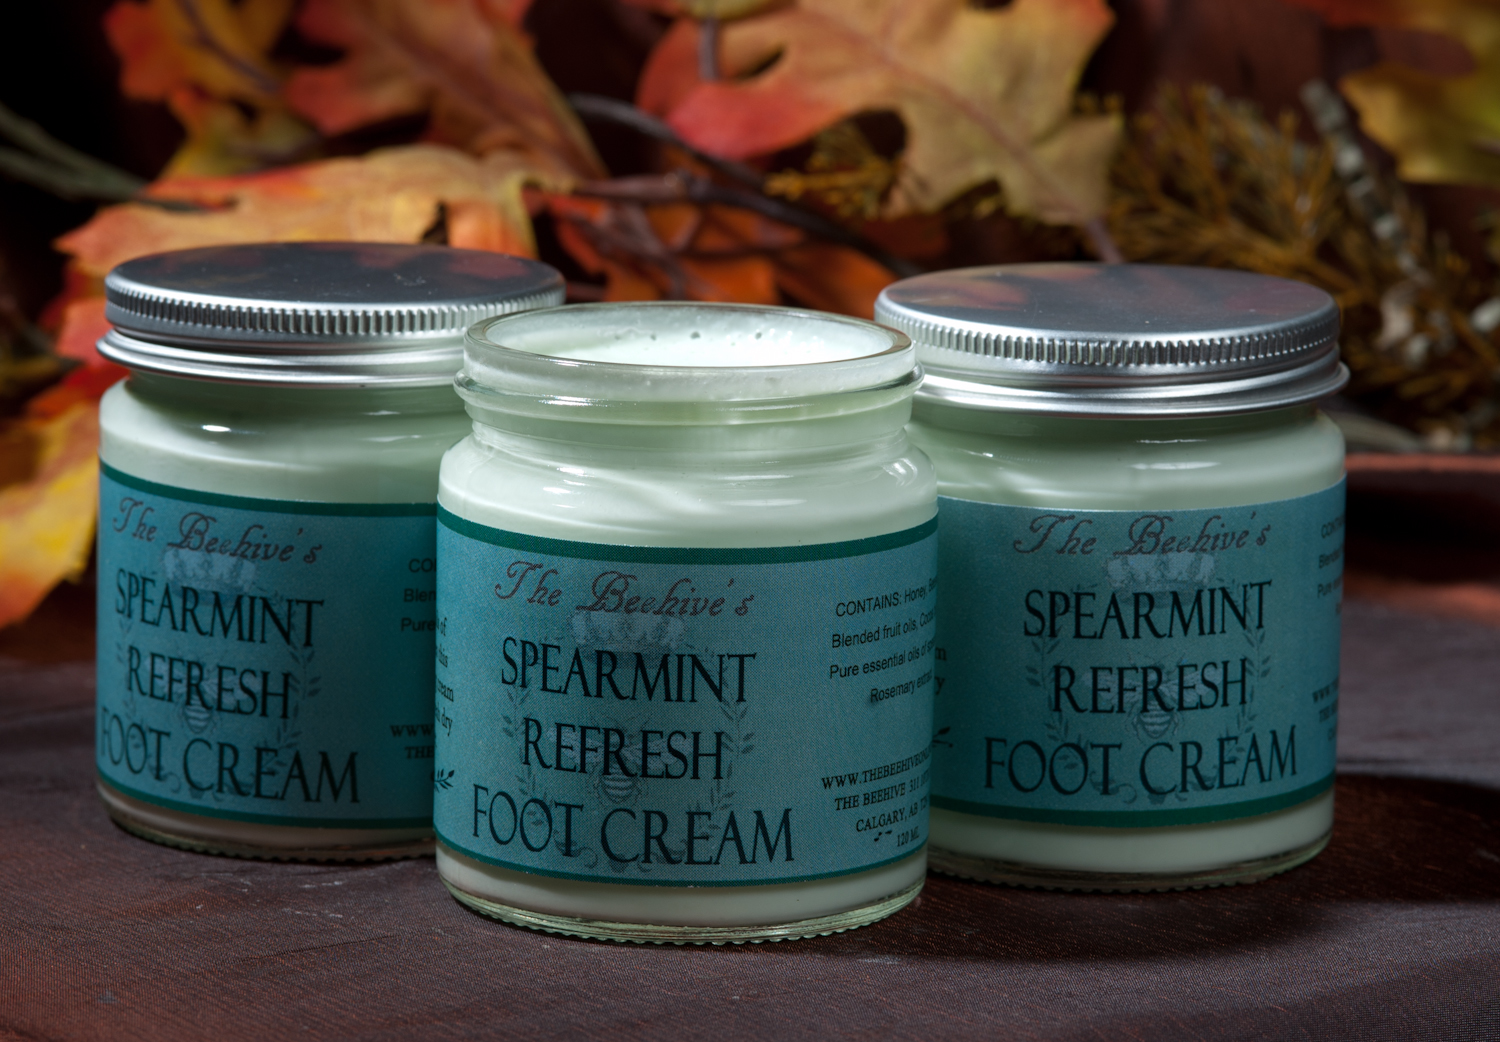 Spearmint Refresh Foot Crème